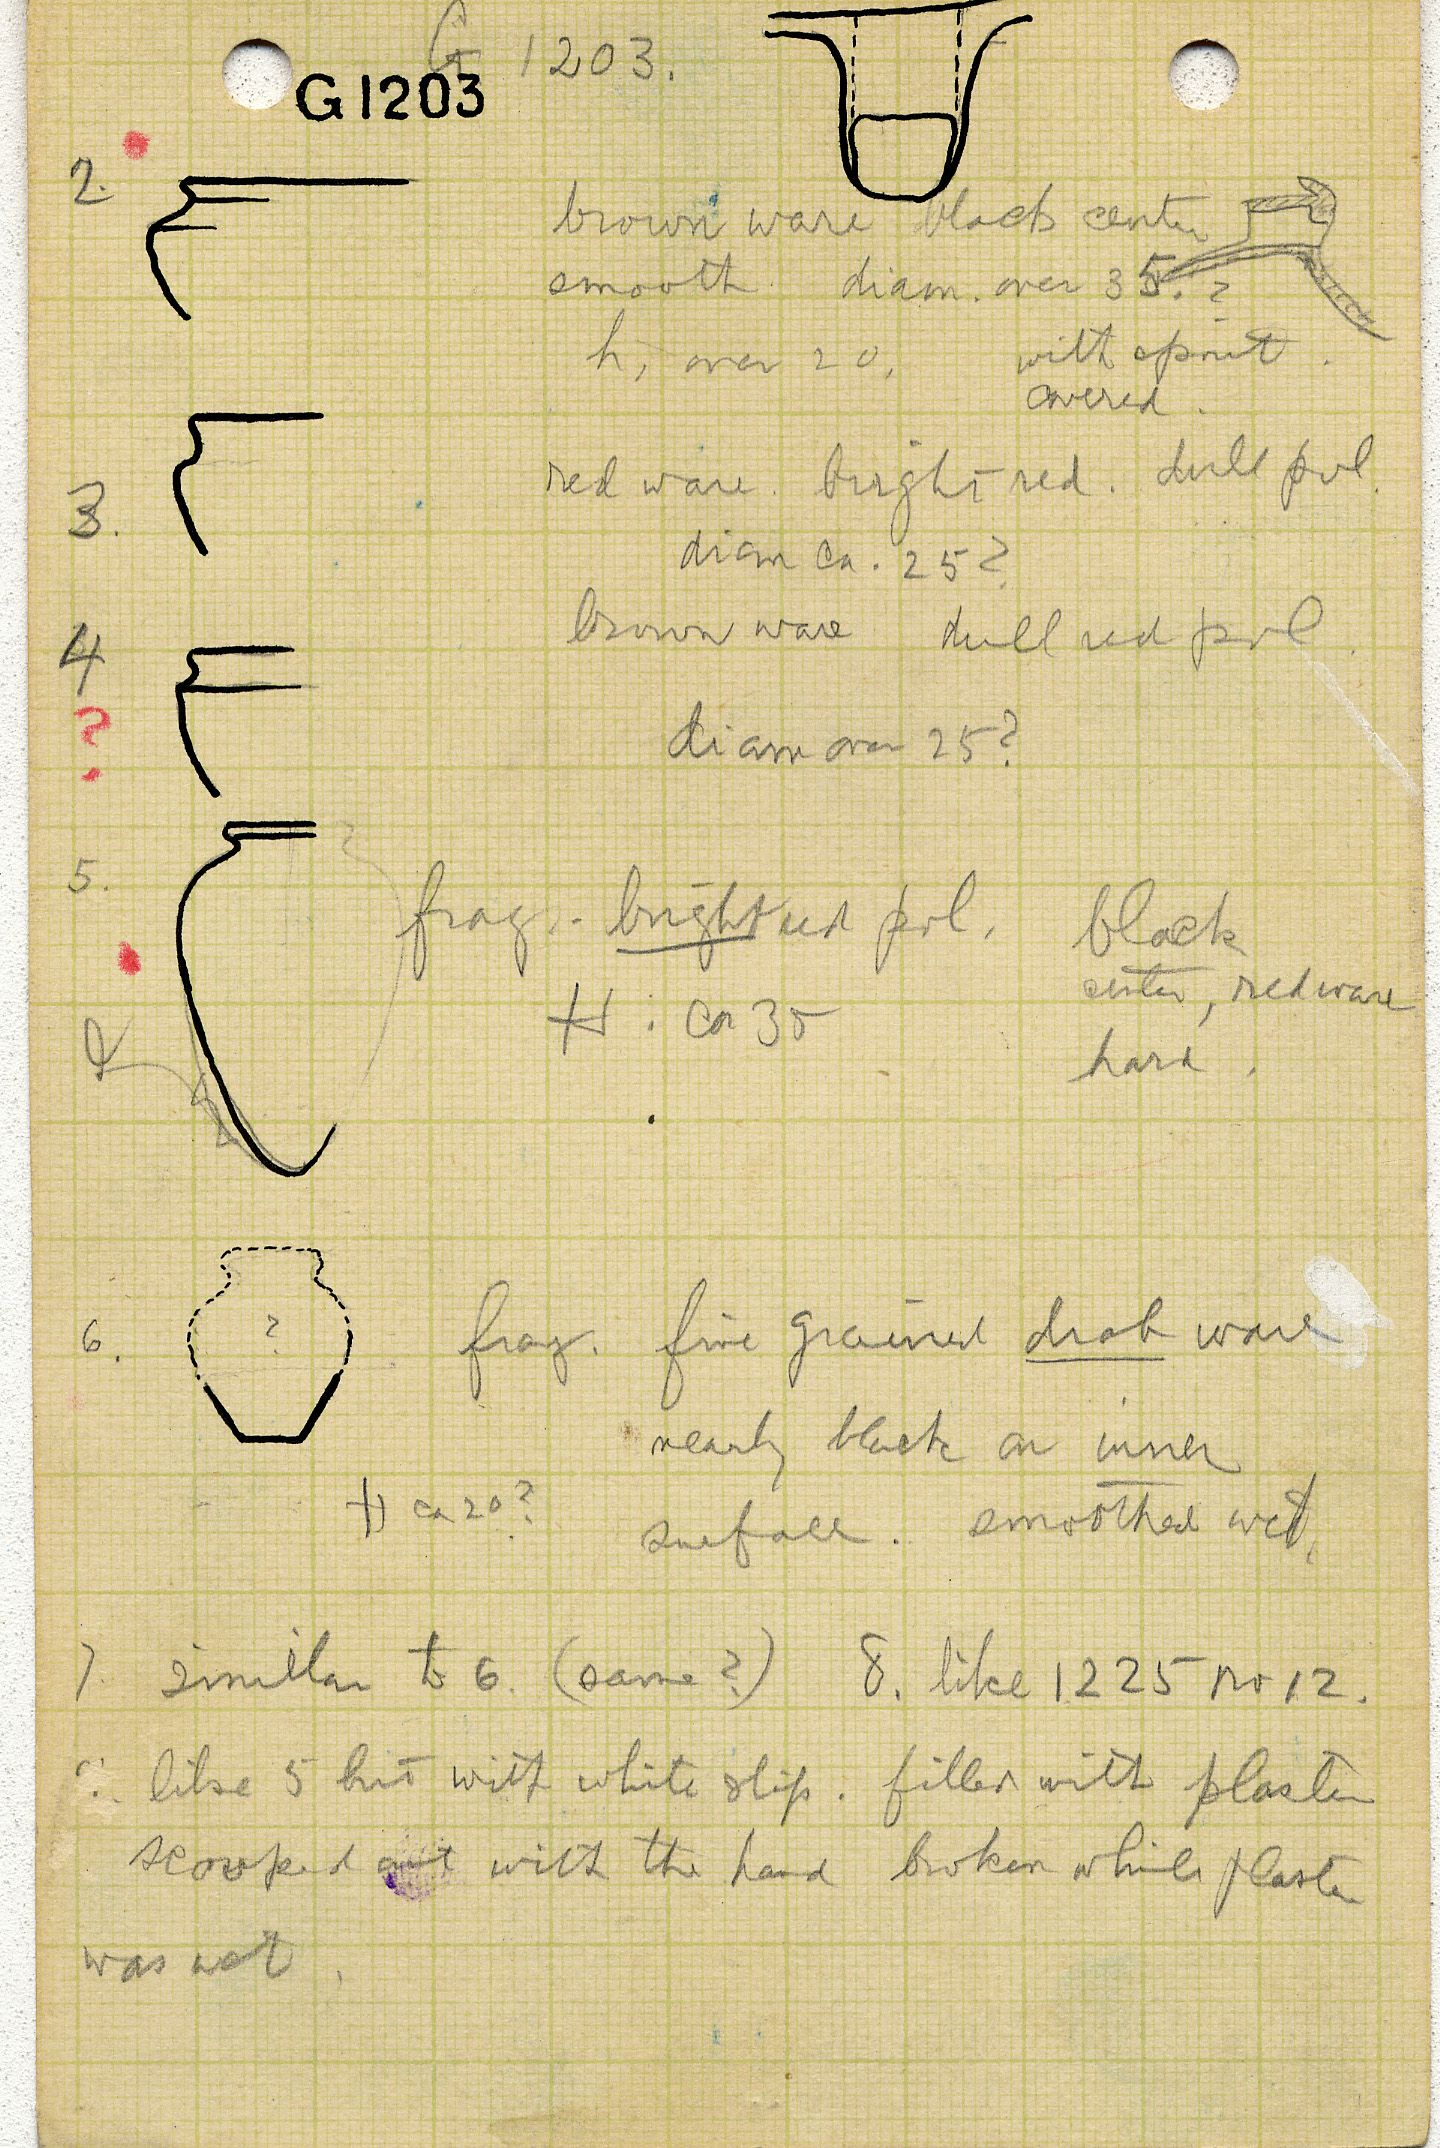 Notes: G 1203, Objects